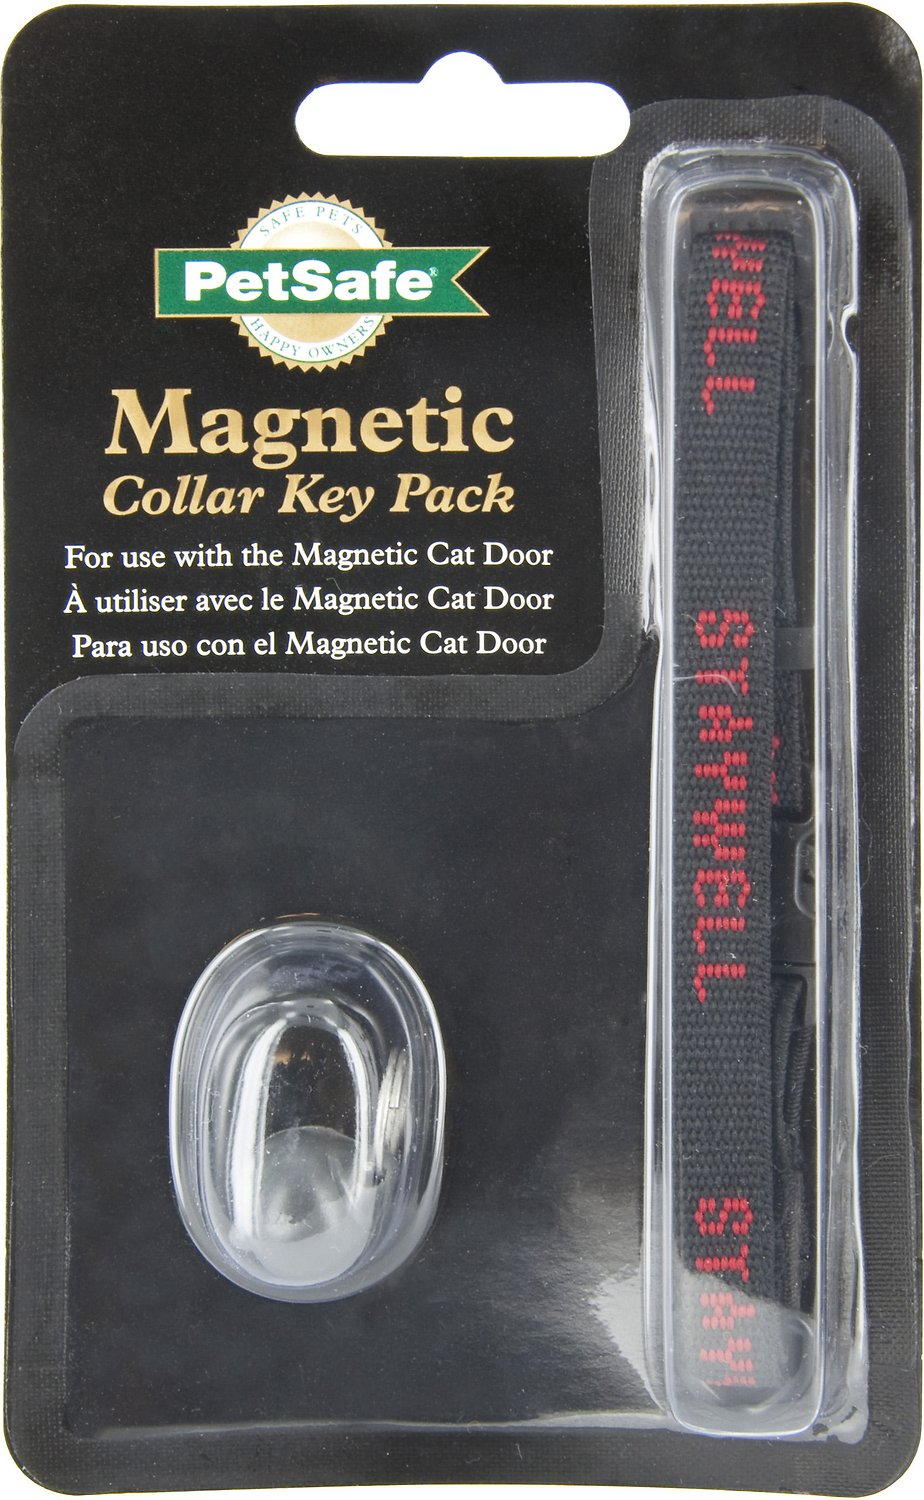 Staywell Magnetic Cat Flap Instructions